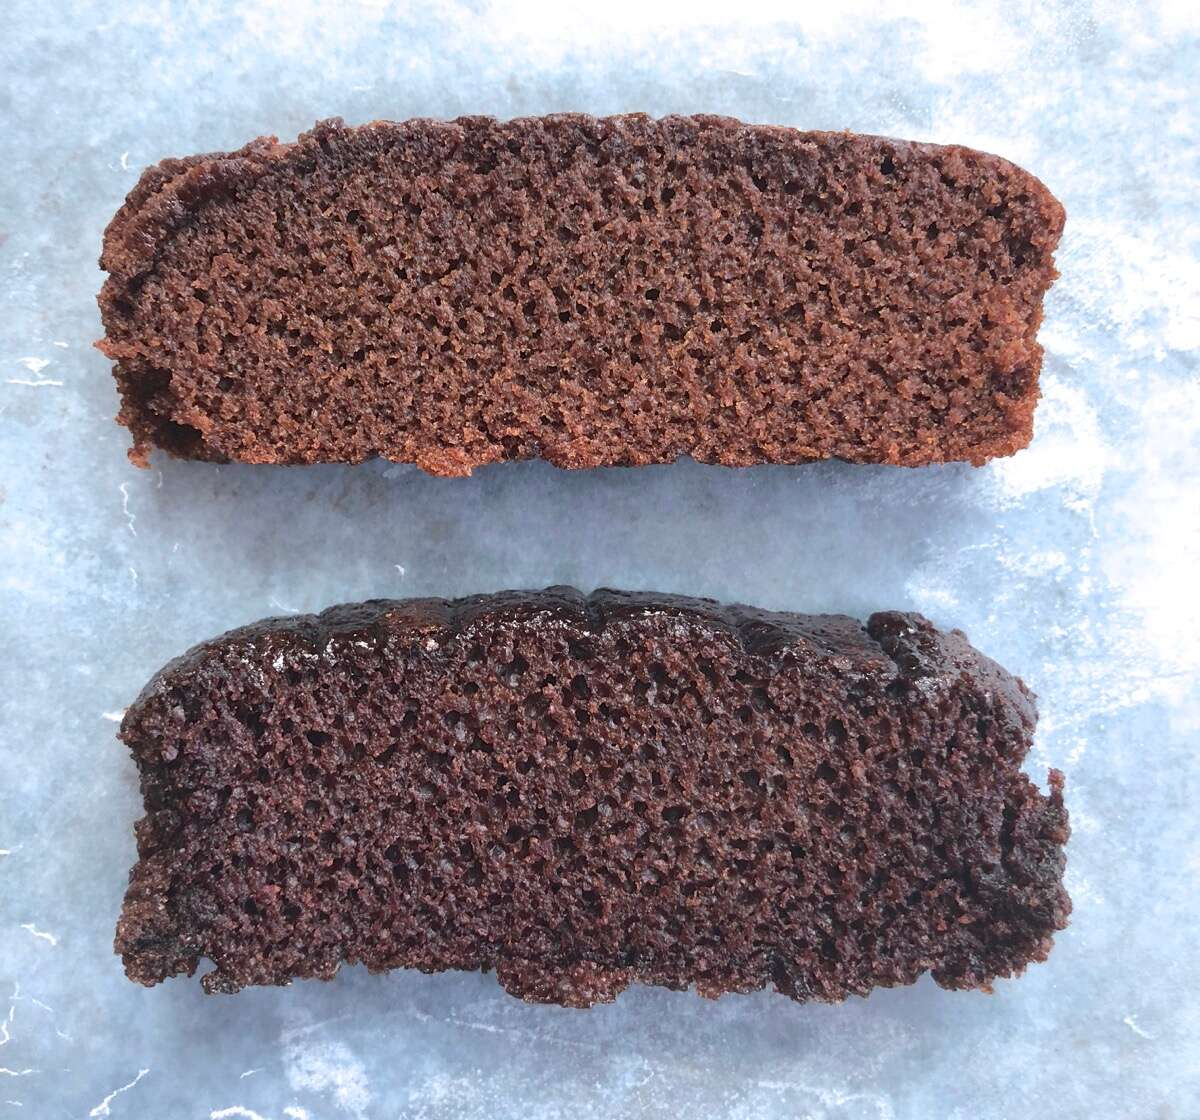 Two slices of chocolate cake, one made with Baking Sugar Alternative, one with regular cane sugar, showing their relative rise.